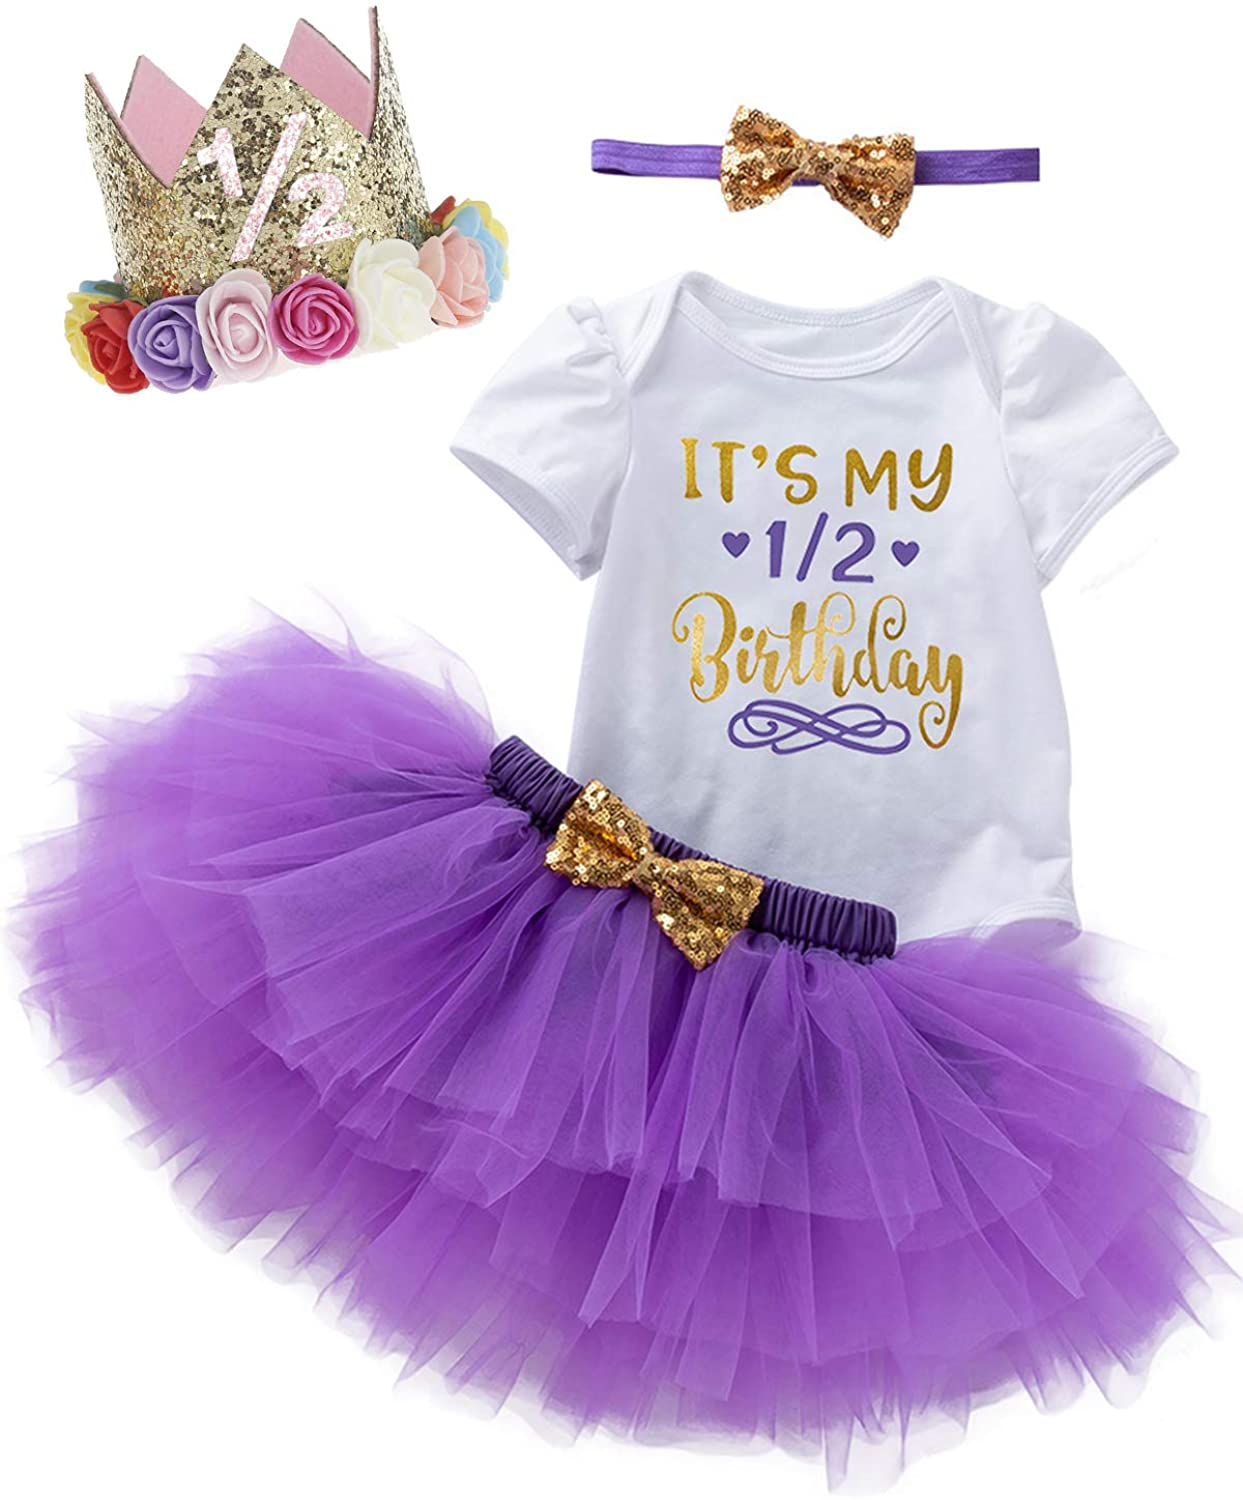 Shalofer Baby Girls Birthday Outfit Tutu Lace Skirt Set with Crown and Headband